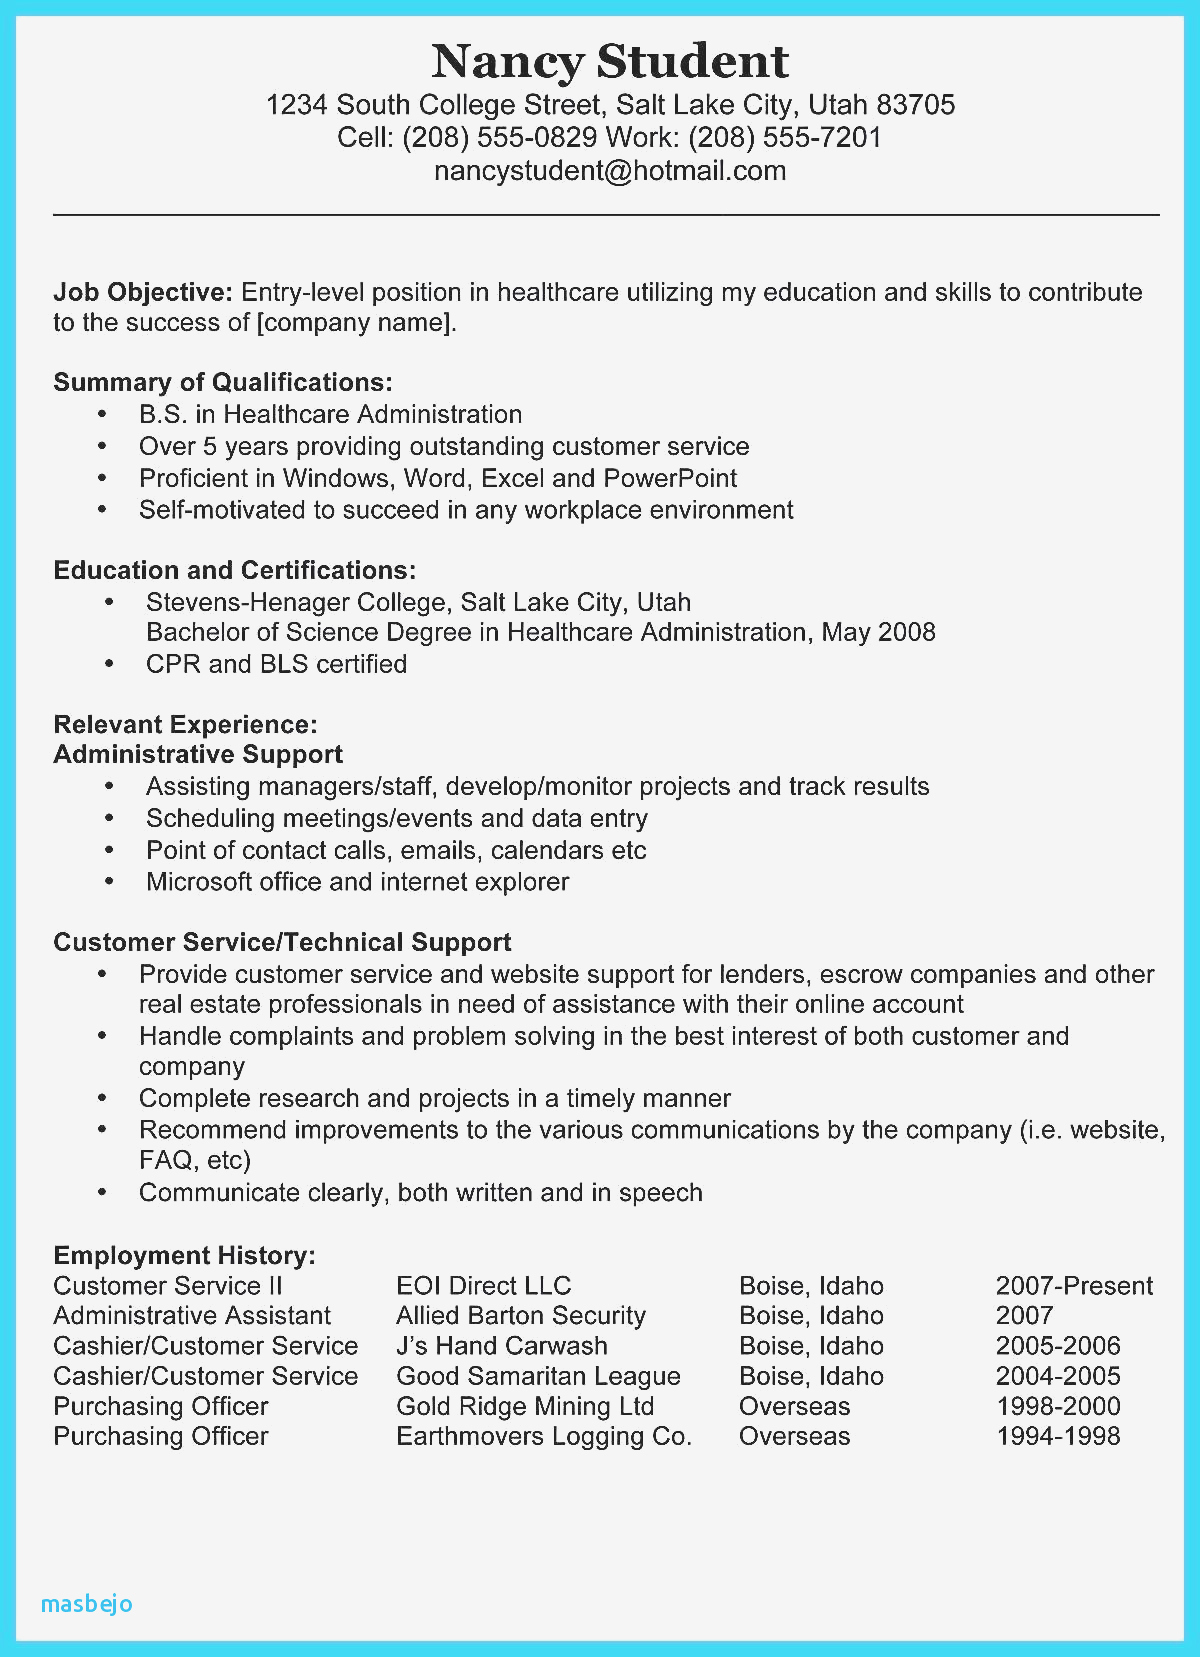 Real Estate Resumes - Real Estate Administration Sample Resume